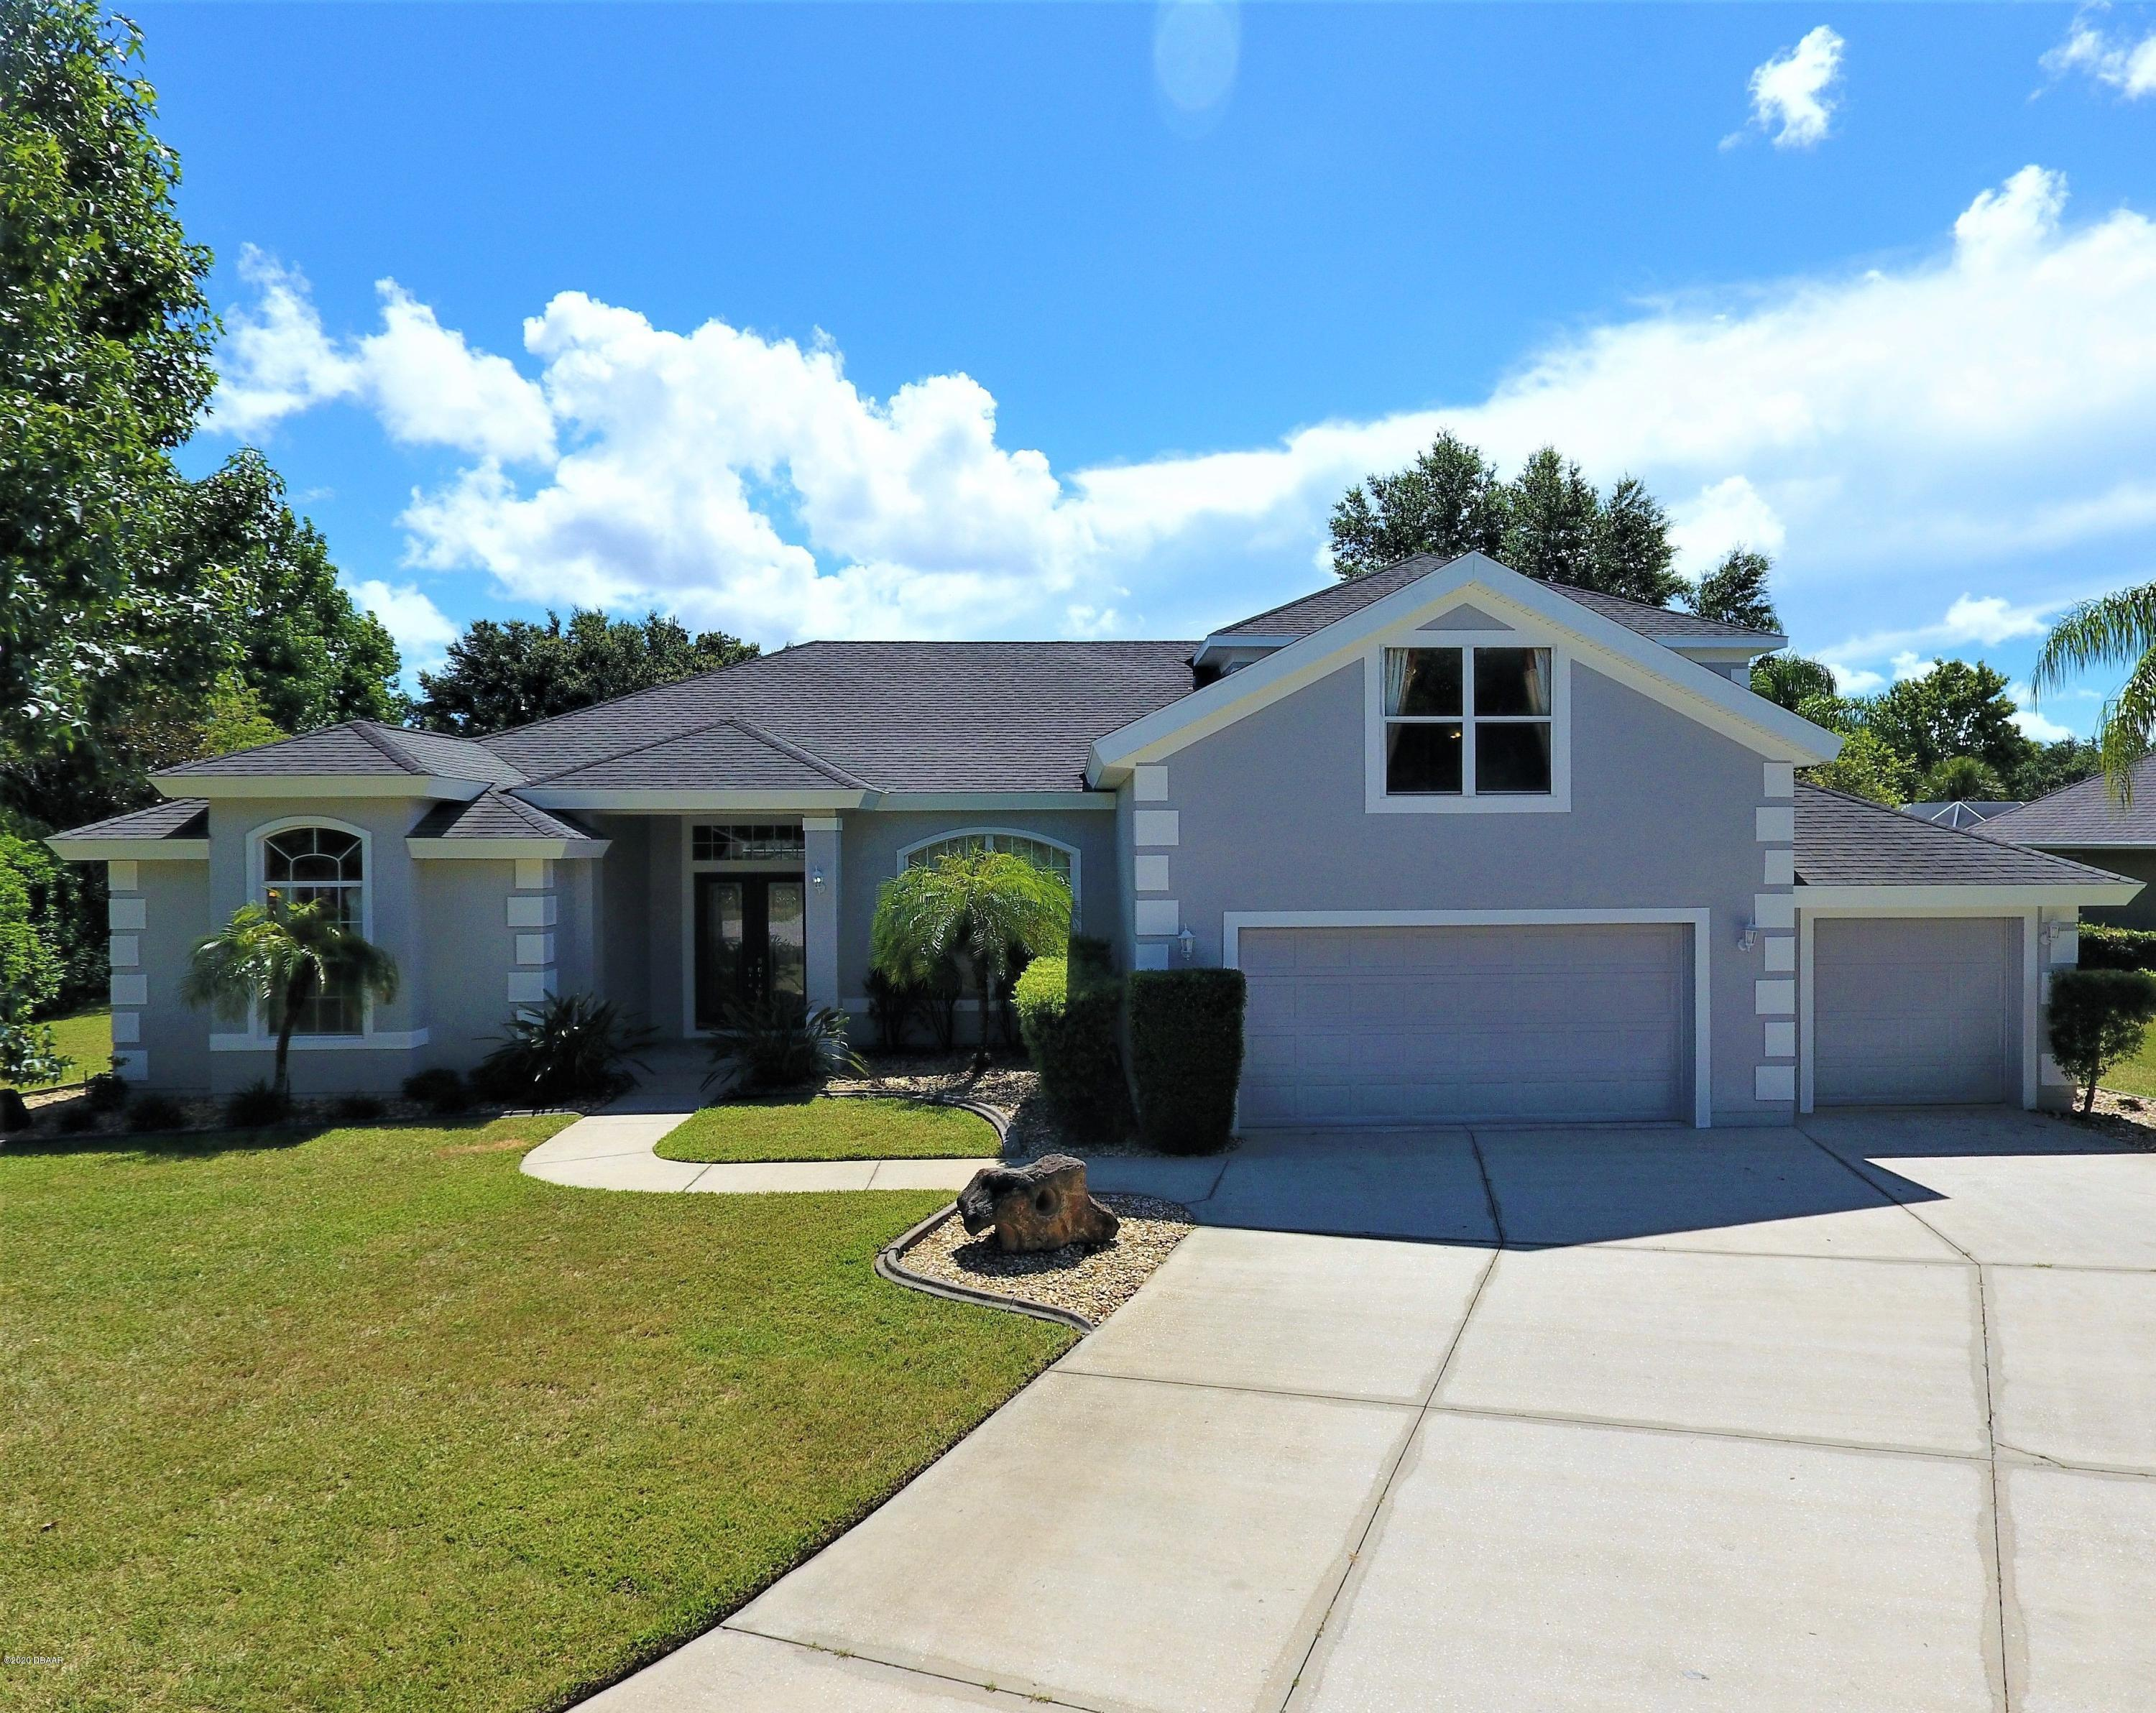 Photo of 31 Deep Woods Way, Ormond Beach, FL 32174